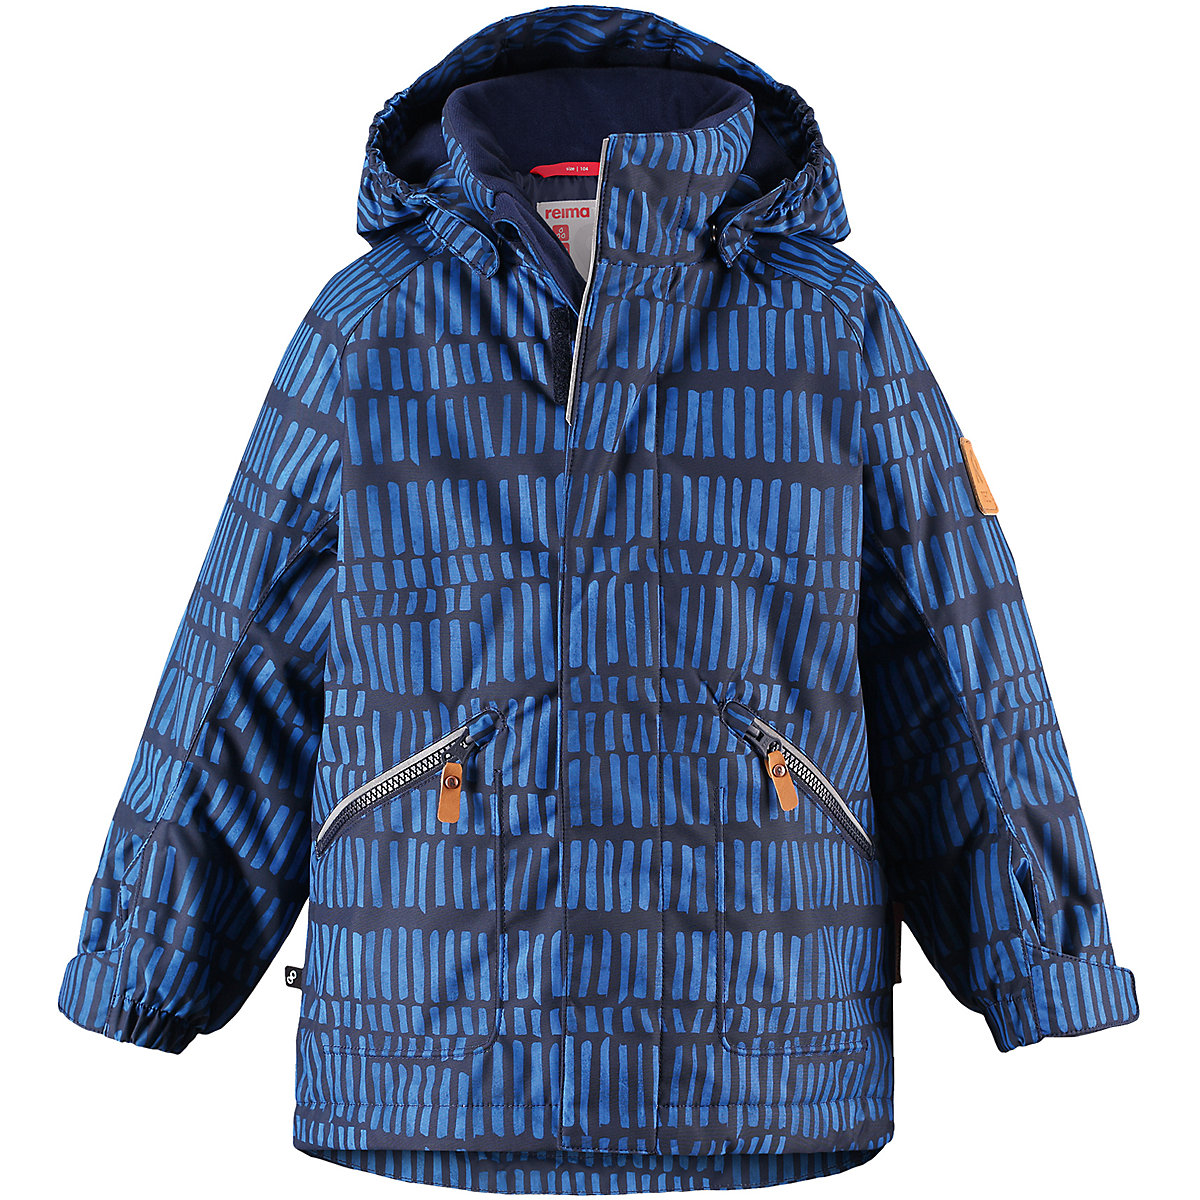 REIMA Jackets 8688719 for boys polyester winter  fur clothes boy brand orangemom winter boys baby clothes 0 24m infant costume for a boy coat jackets soft high quality outerwear